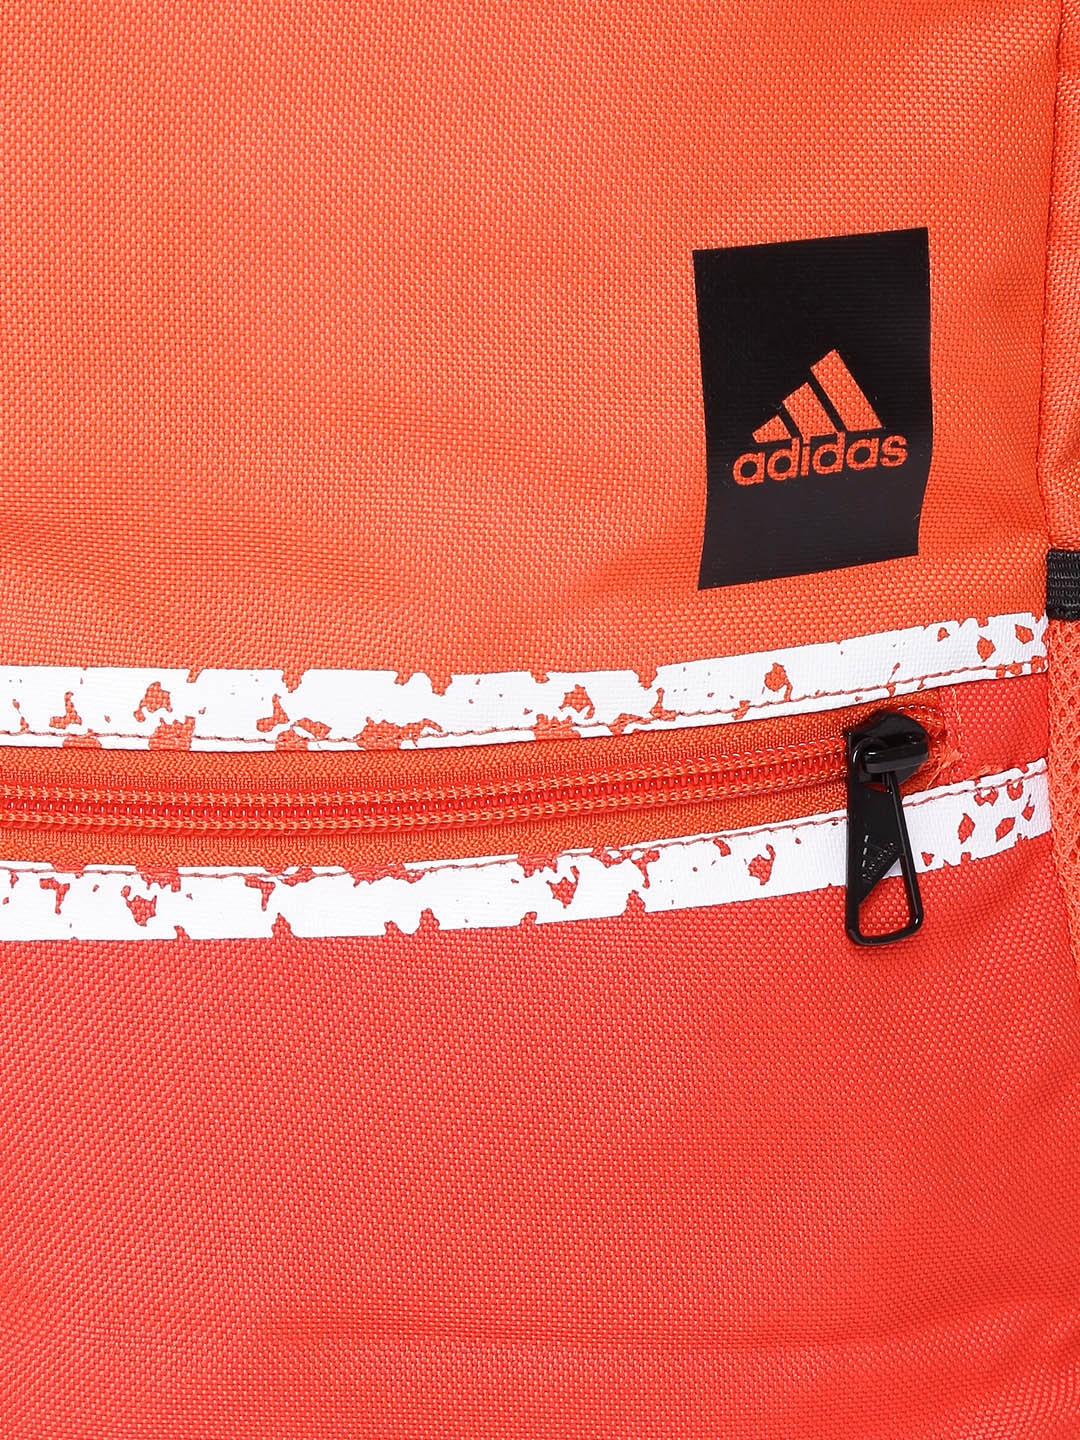 a142cc5c886e06 Buy ADIDAS Unisex Orange Solid Classic Backpack - Backpacks for Unisex  1943193 | Myntra